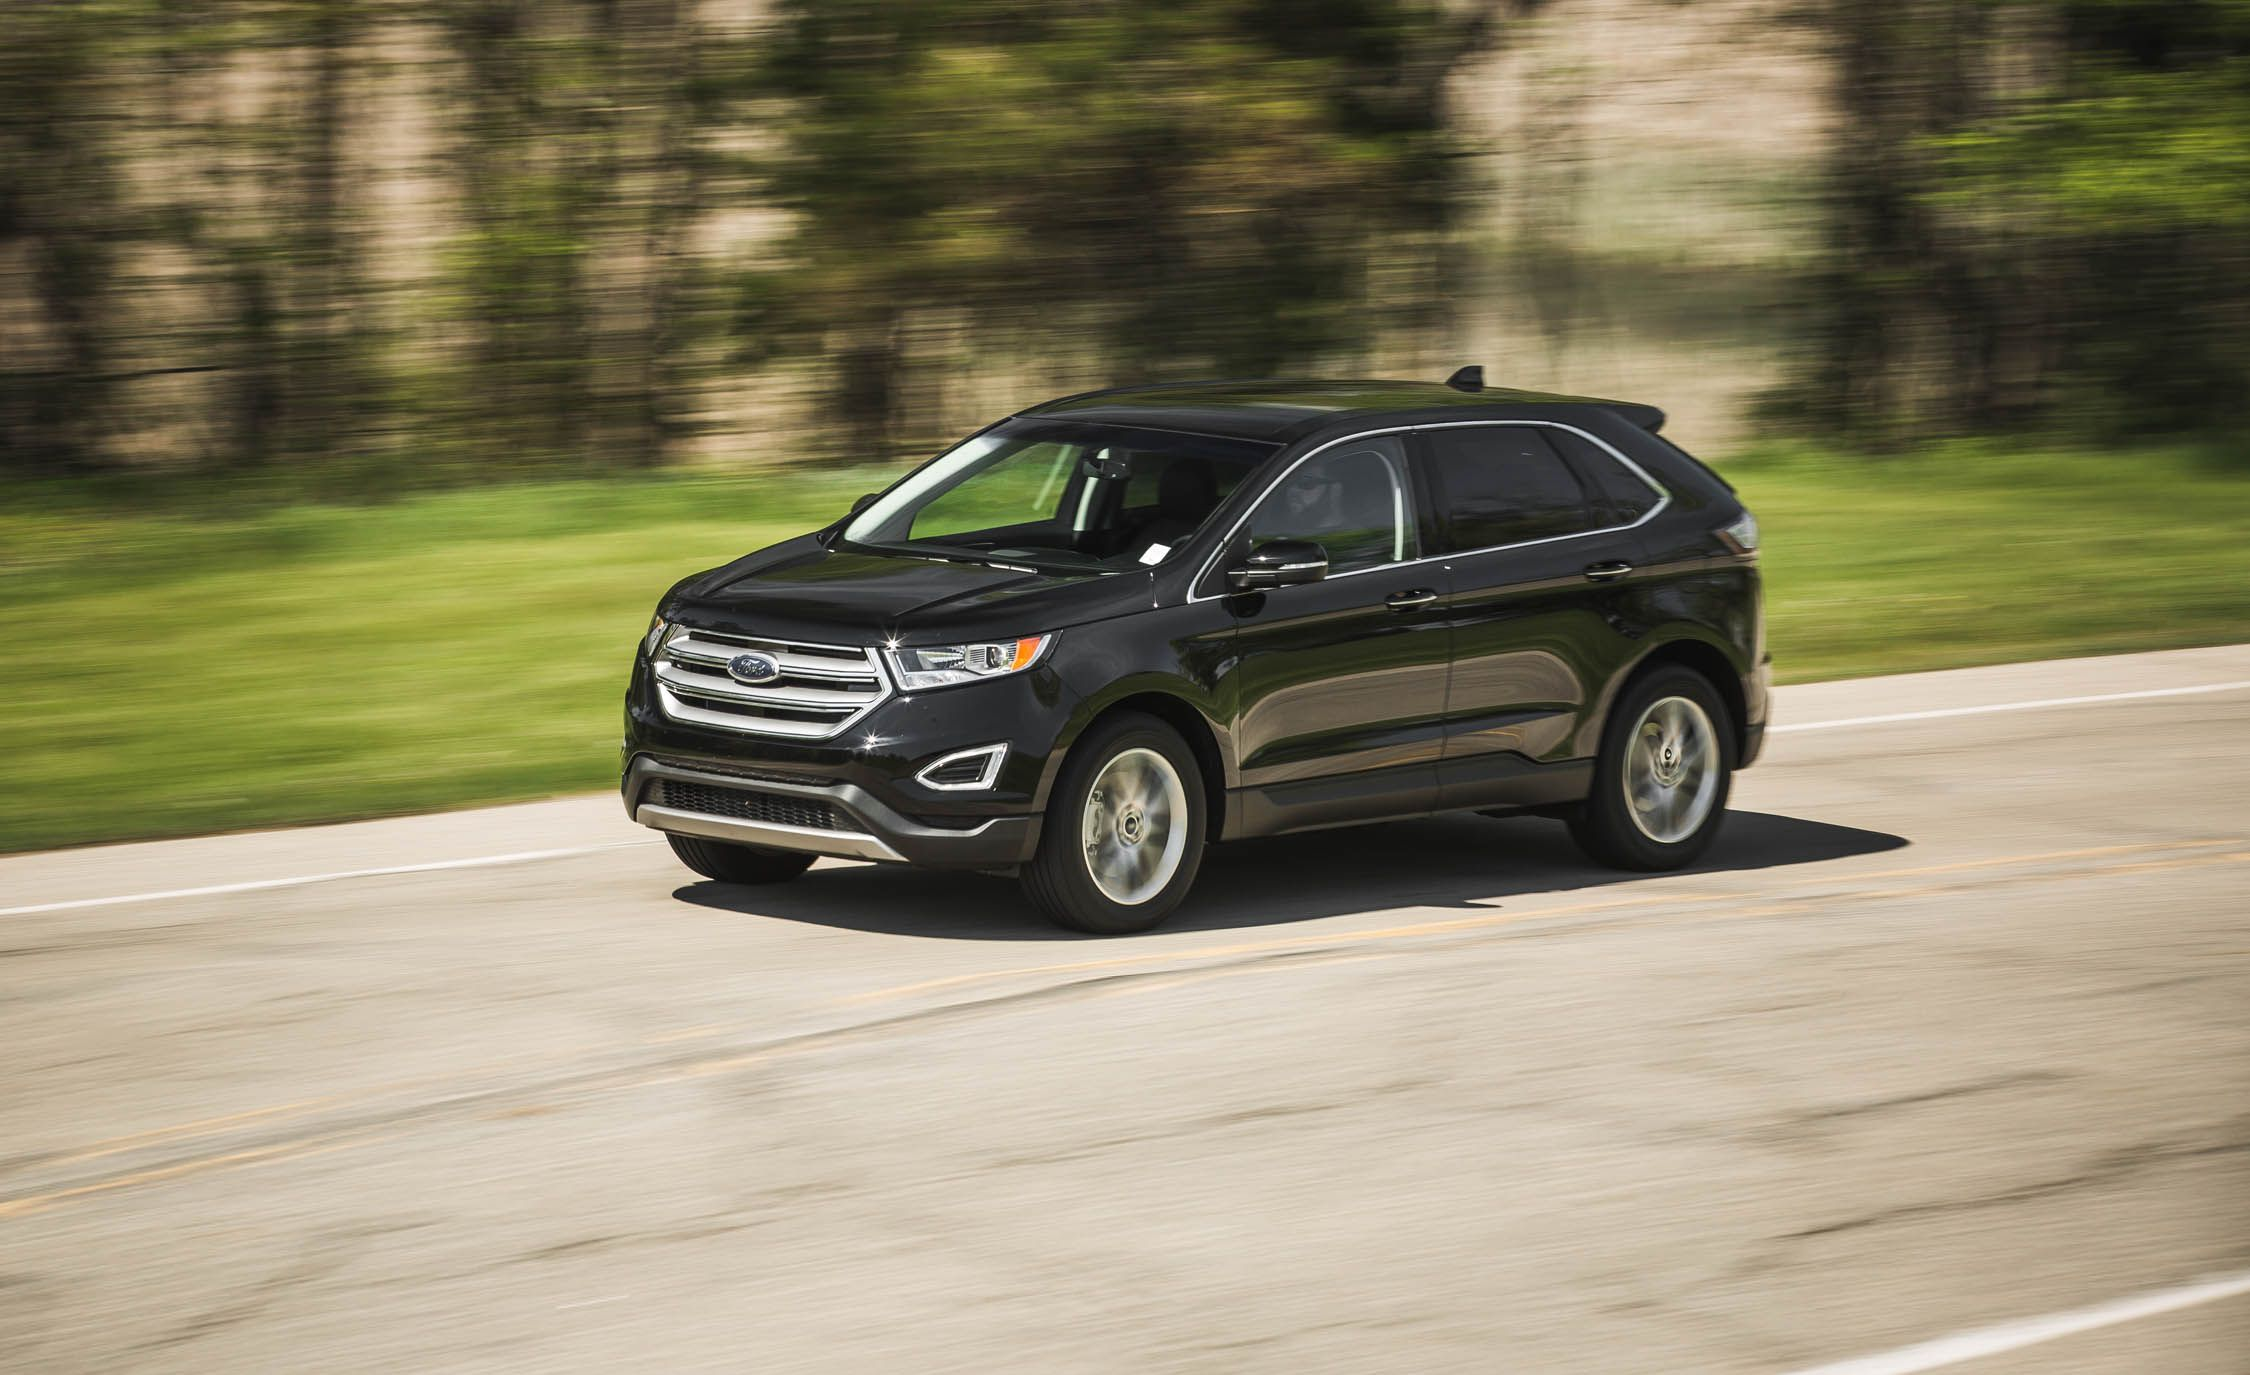 Ford Suv Models >> 2017 Ford Edge | In-Depth Model Review | Car and Driver